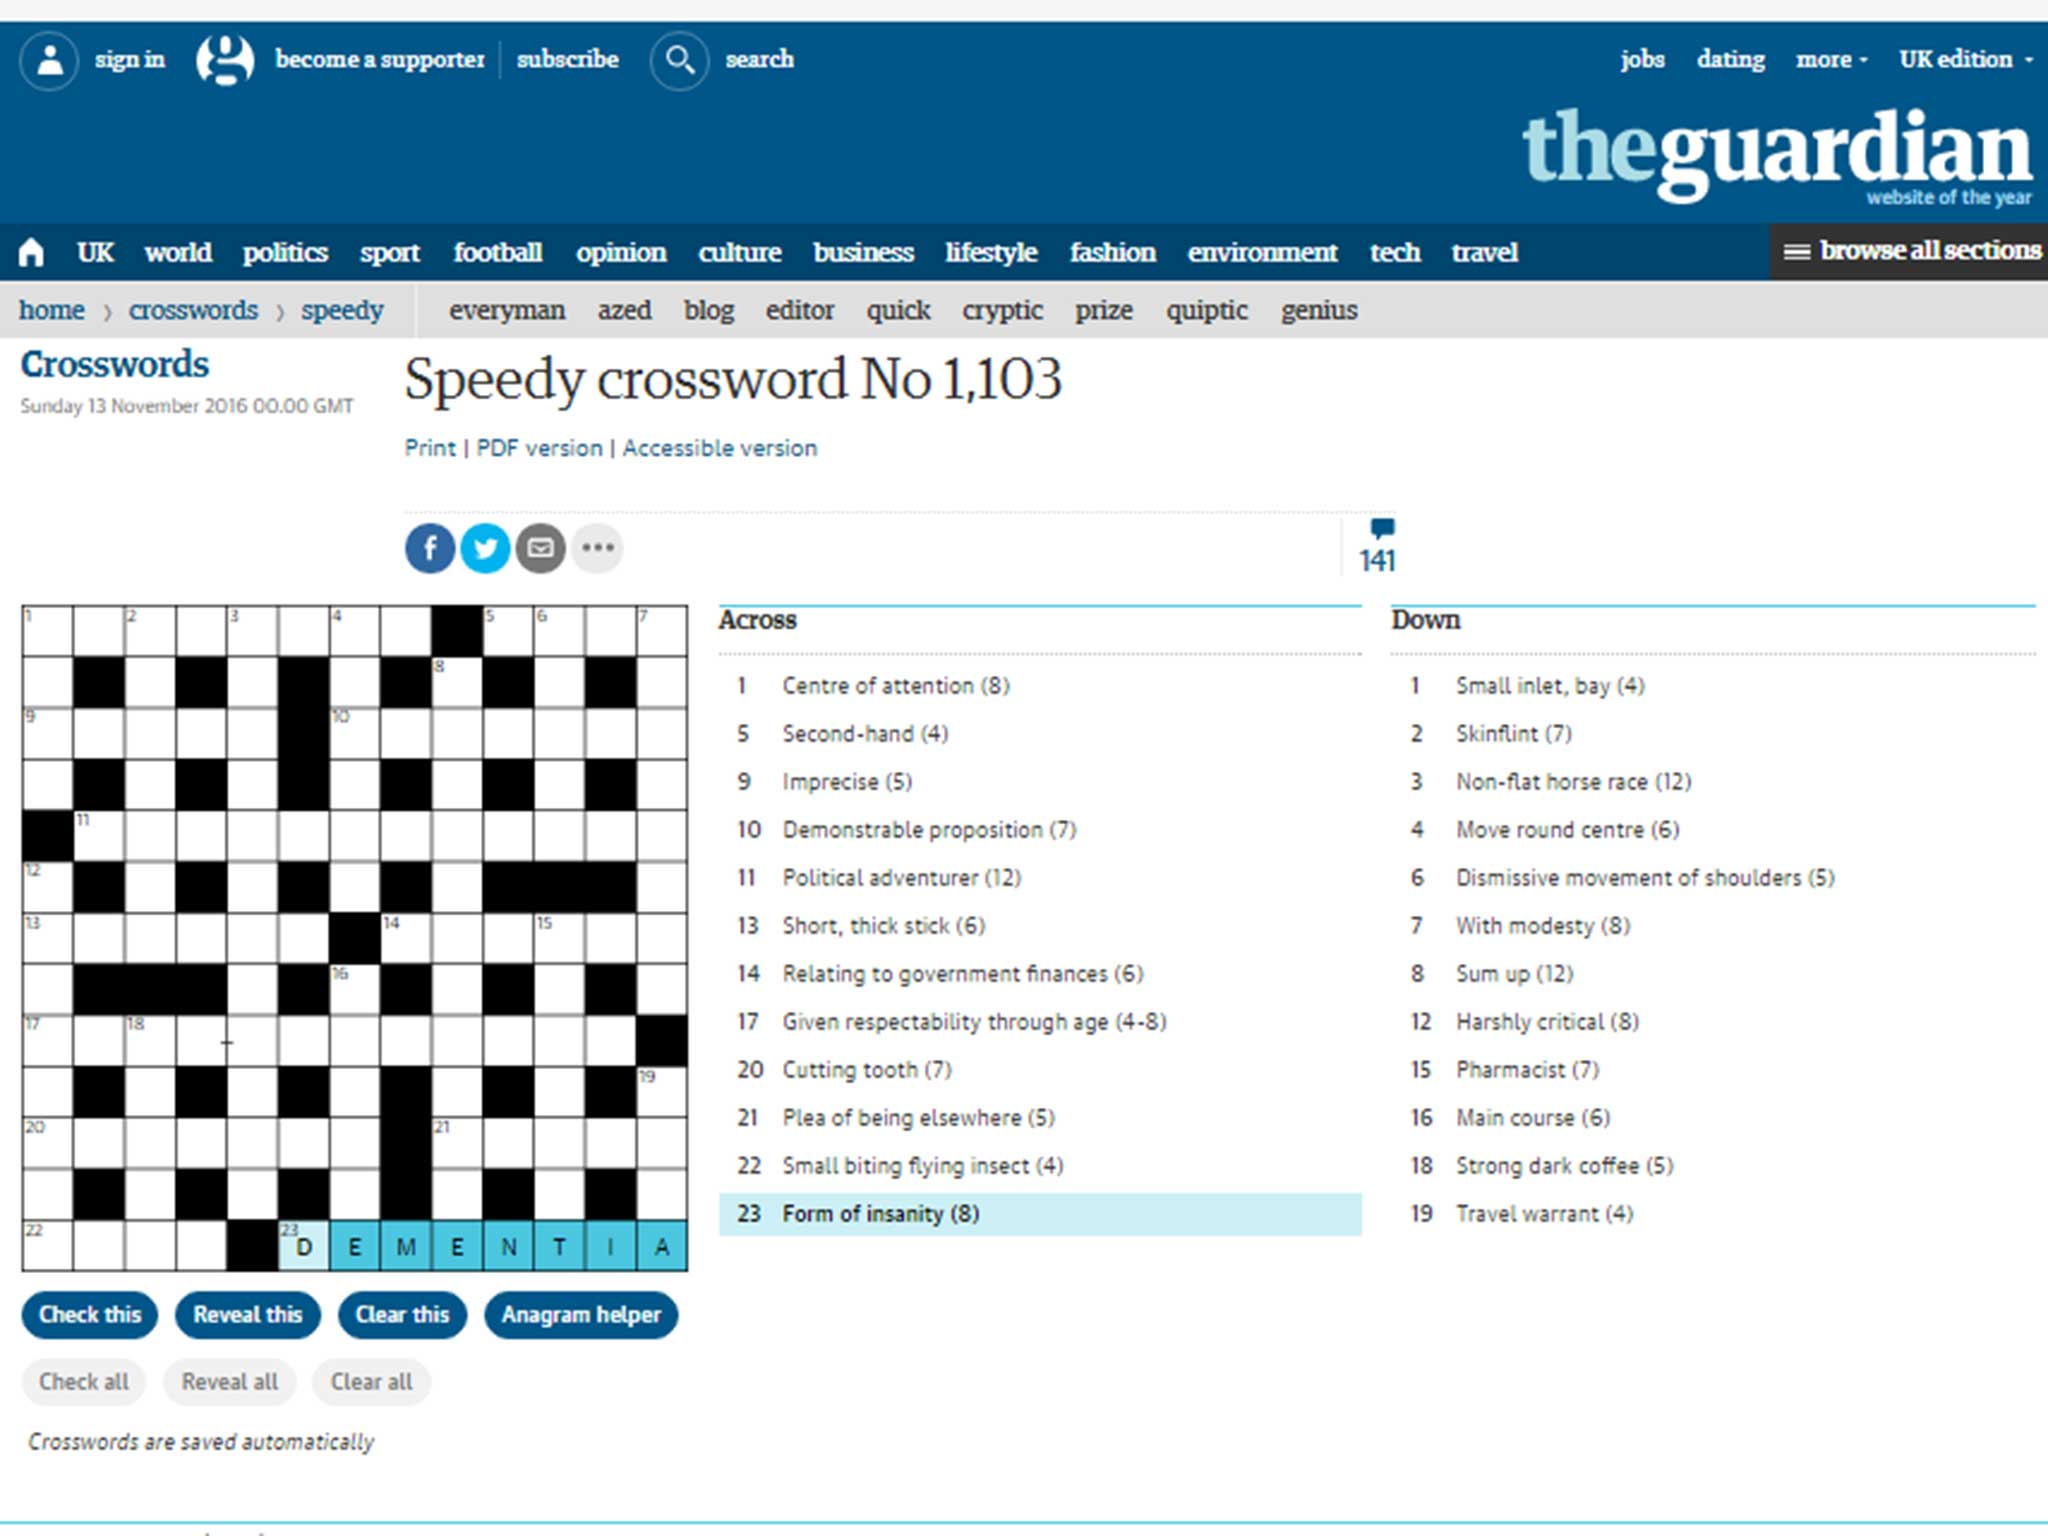 Inkl Guardian Crossword Labels Dementia A Form Of Insanity The Independent Uk